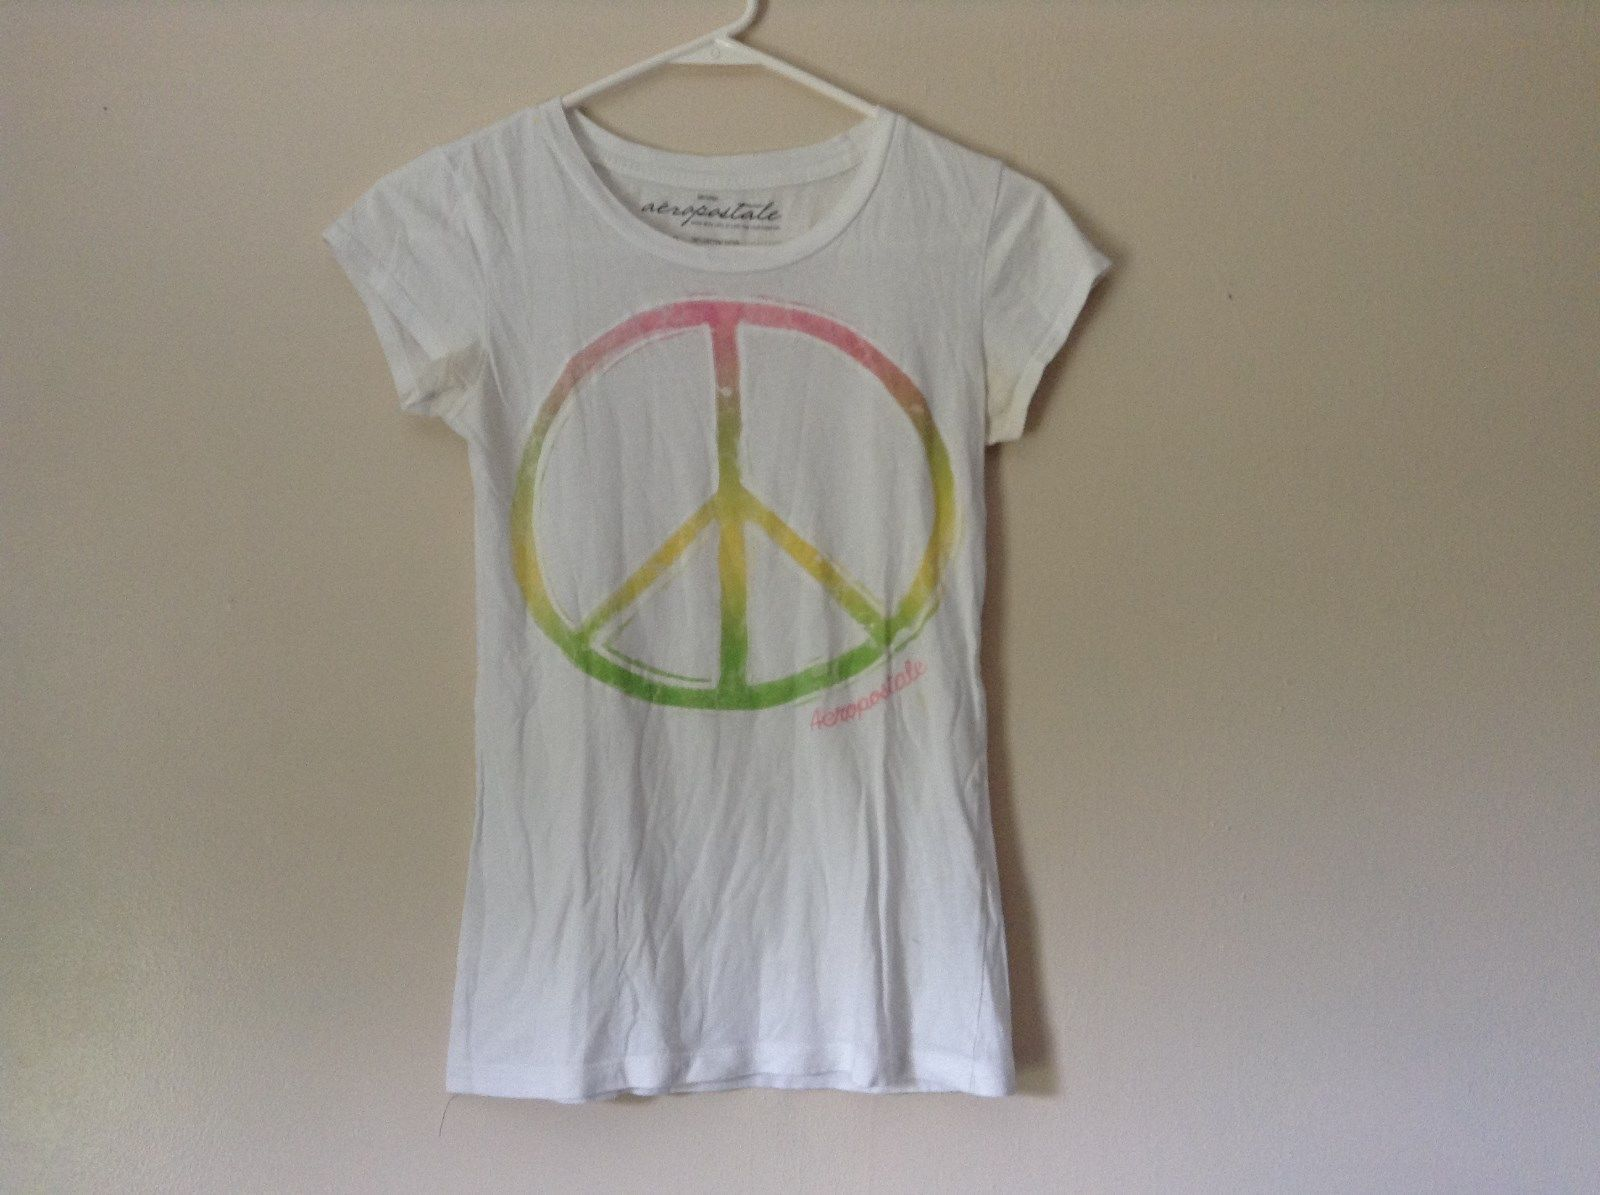 Aeropostale White Short Sleeve T Shirt Peace Sign 100 Percent Cotton Size S